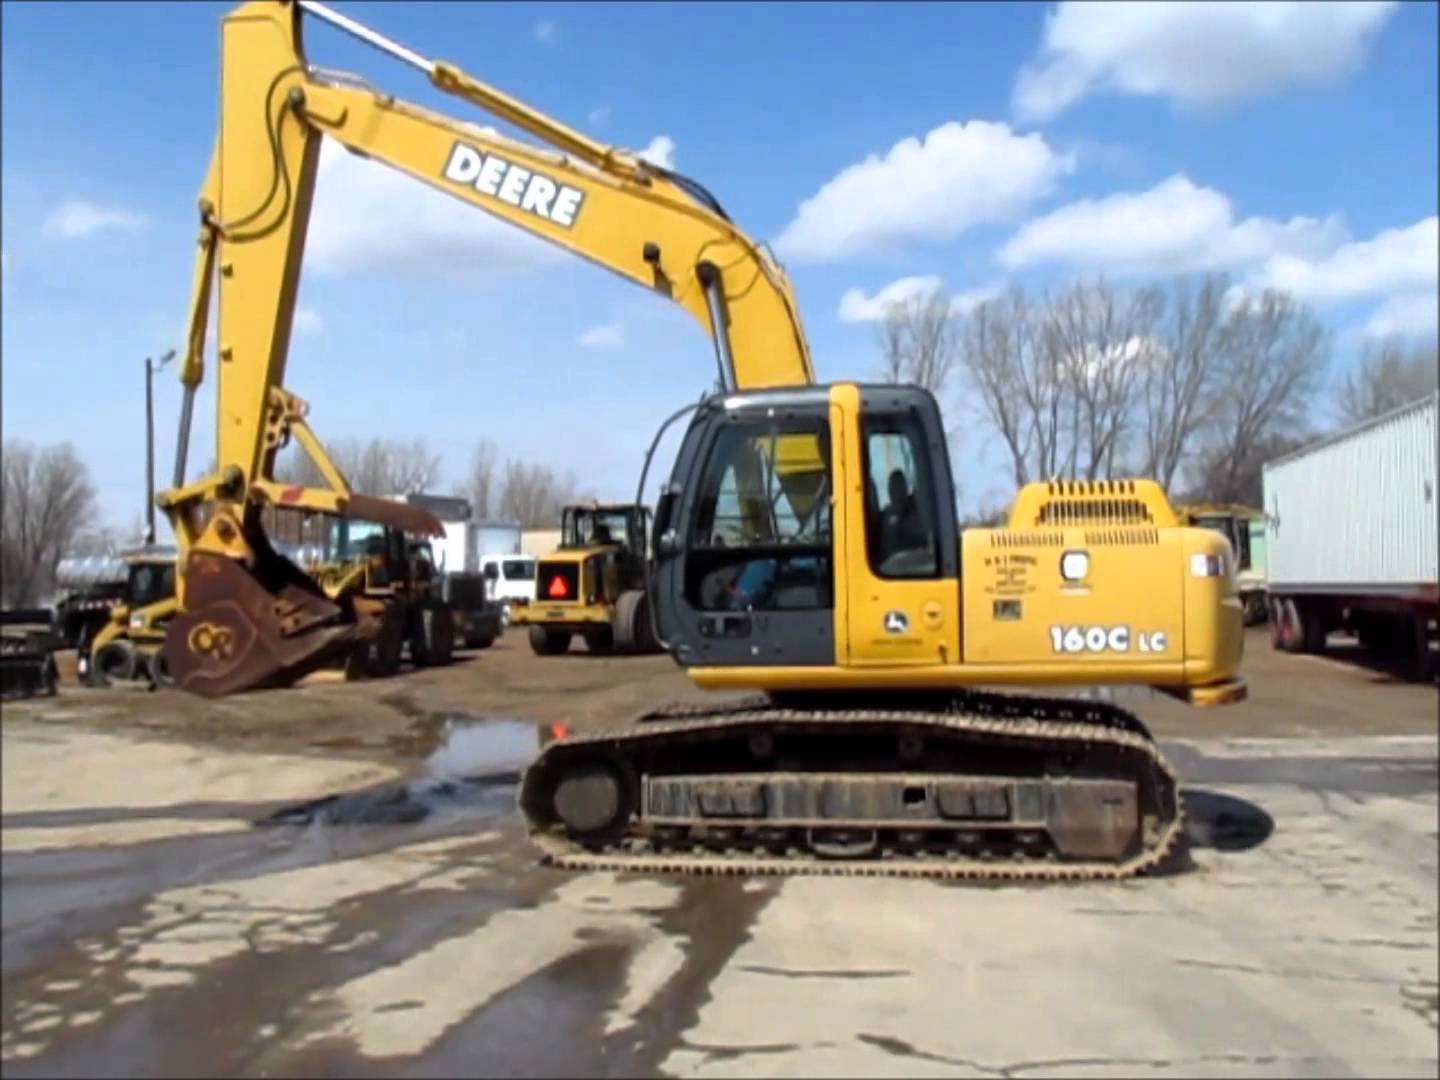 2005 John Deere 160C LC excavator for sale | sold at ...